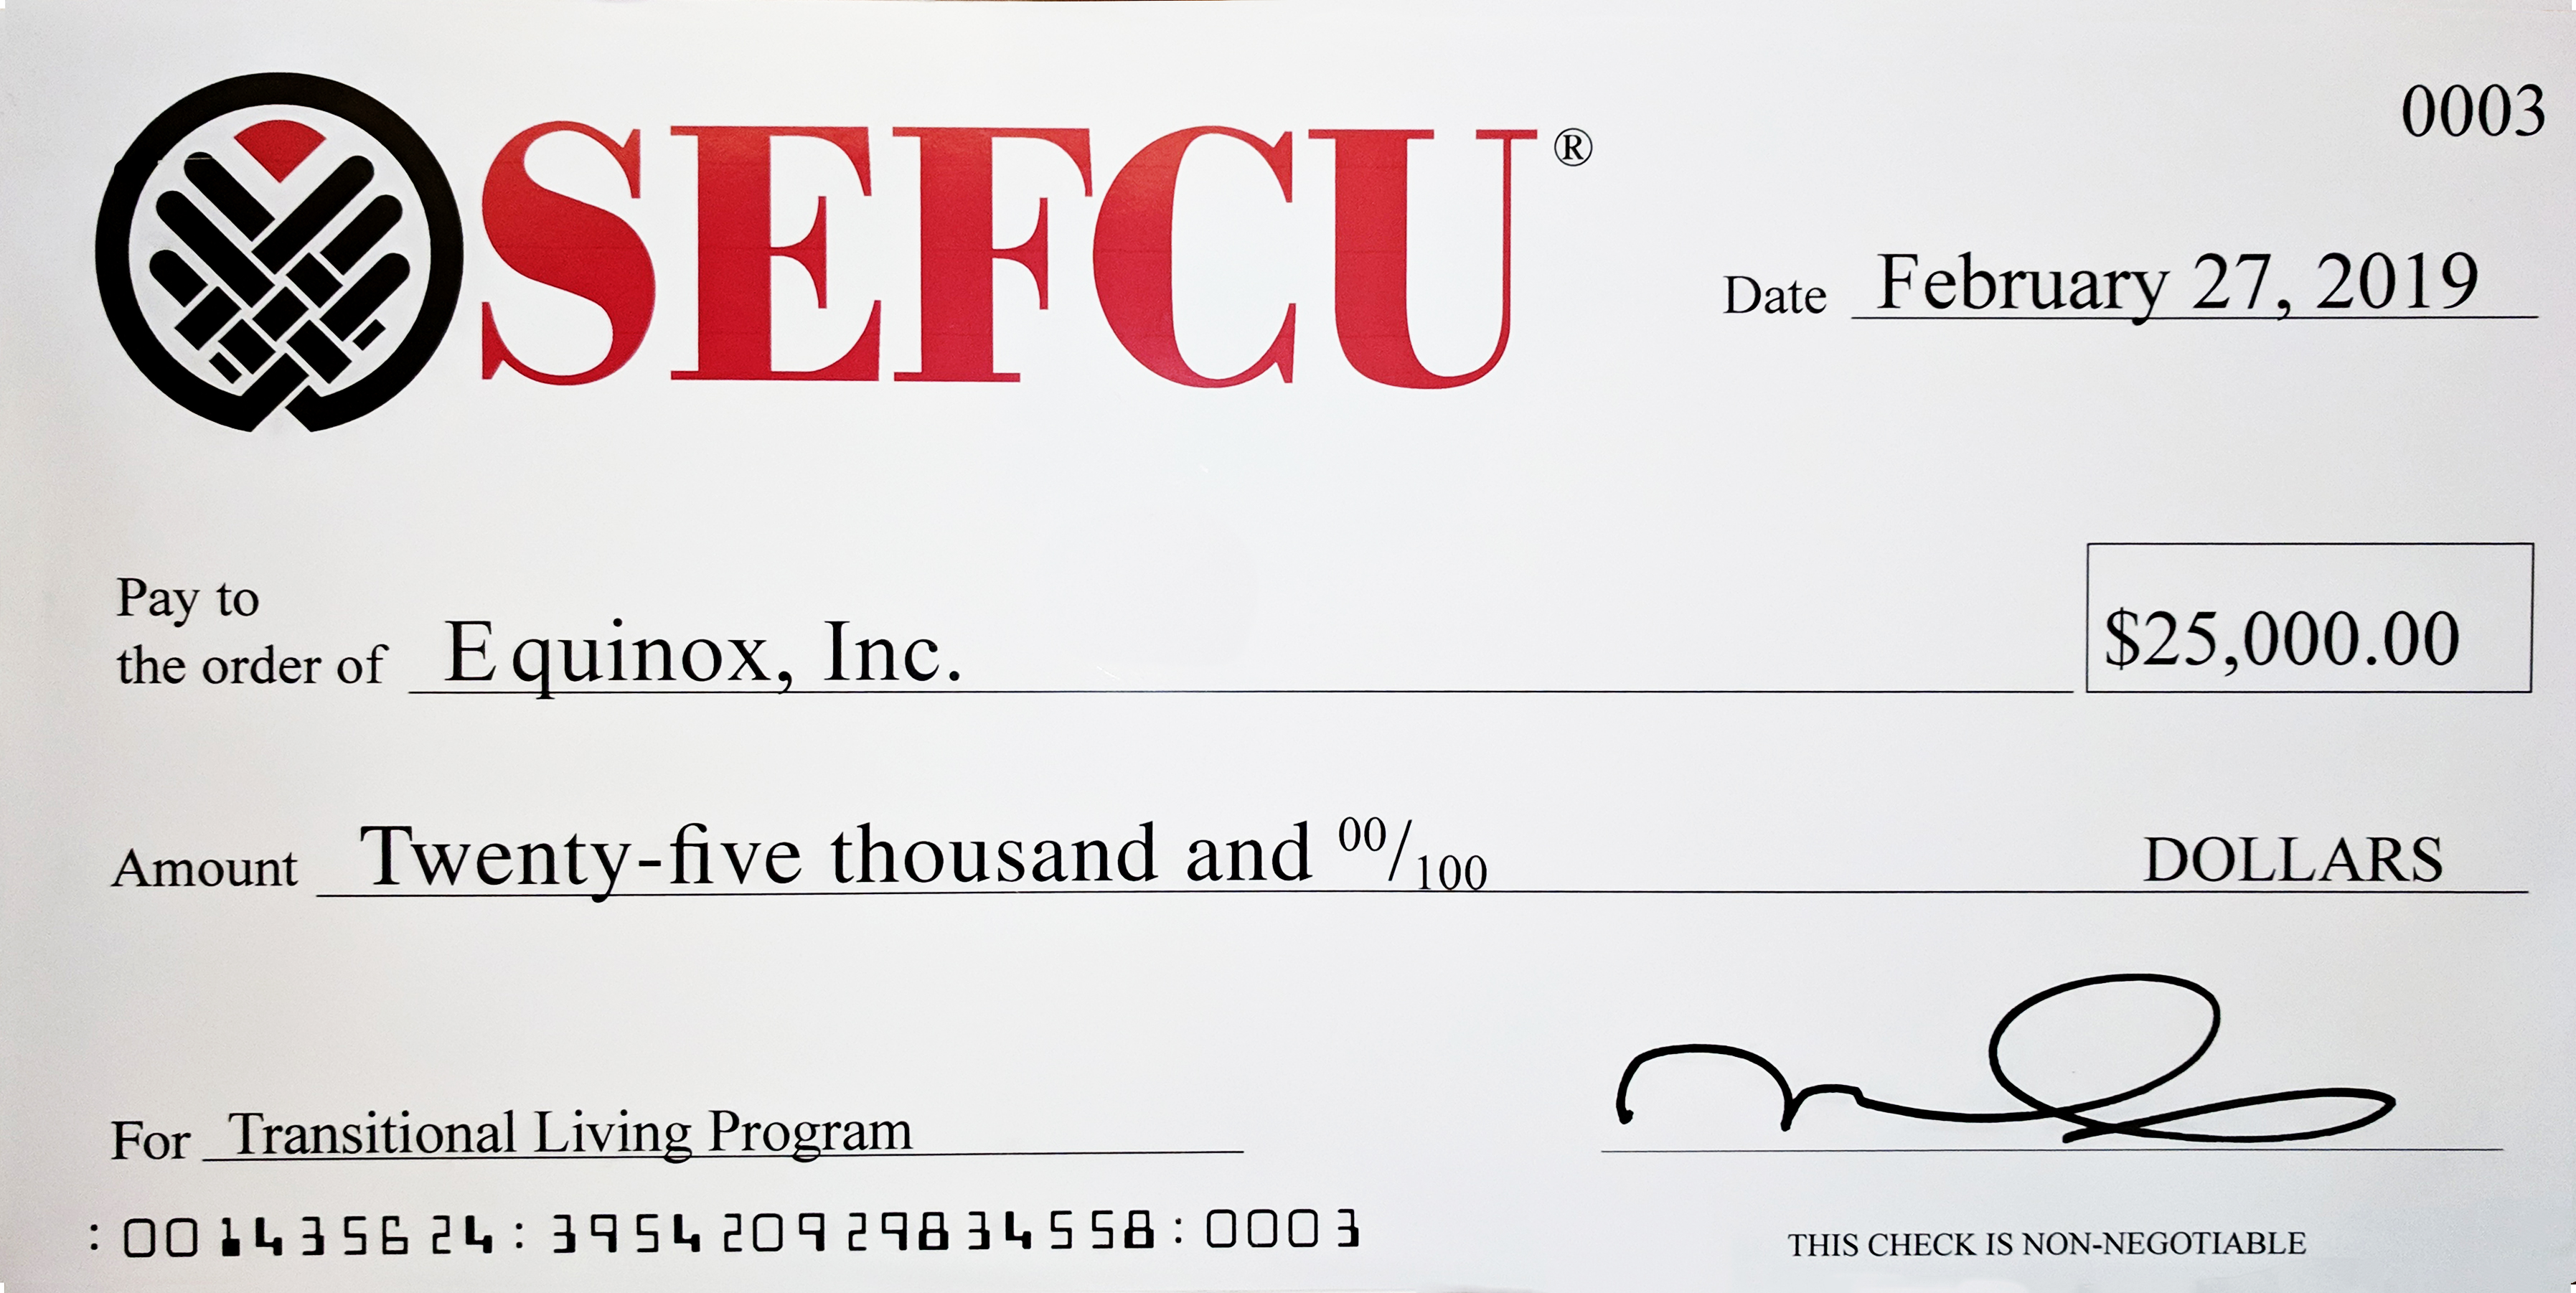 Uploaded Image: /vs-uploads/news-images/Sefcu Check.jpg